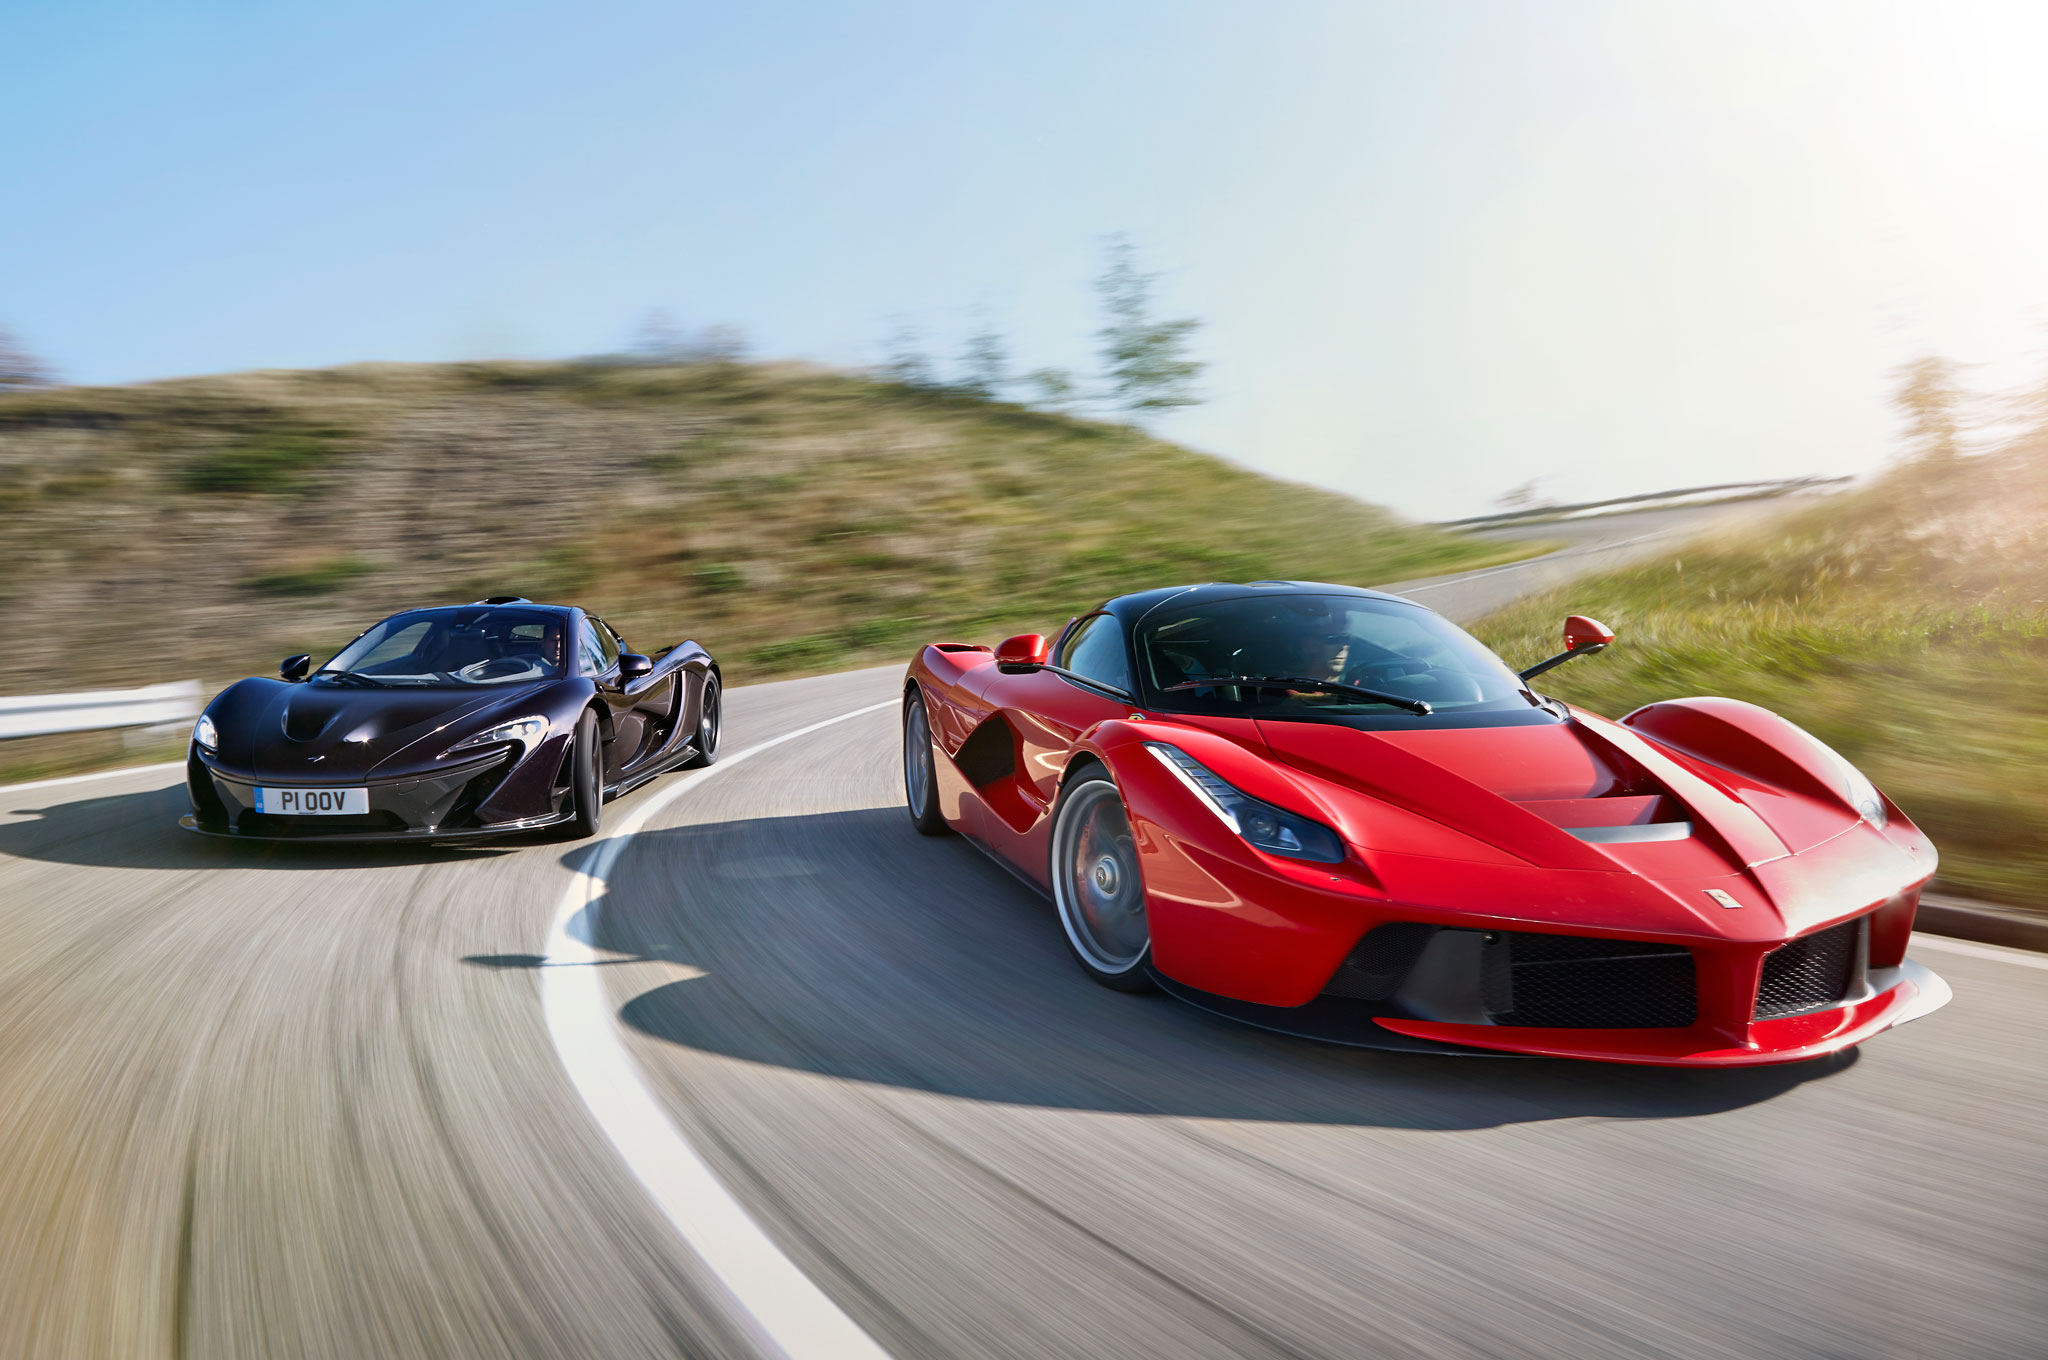 Pirelli P Zero >> Hybrid is the New Fast: Ferrari LaFerrari vs. McLaren P1